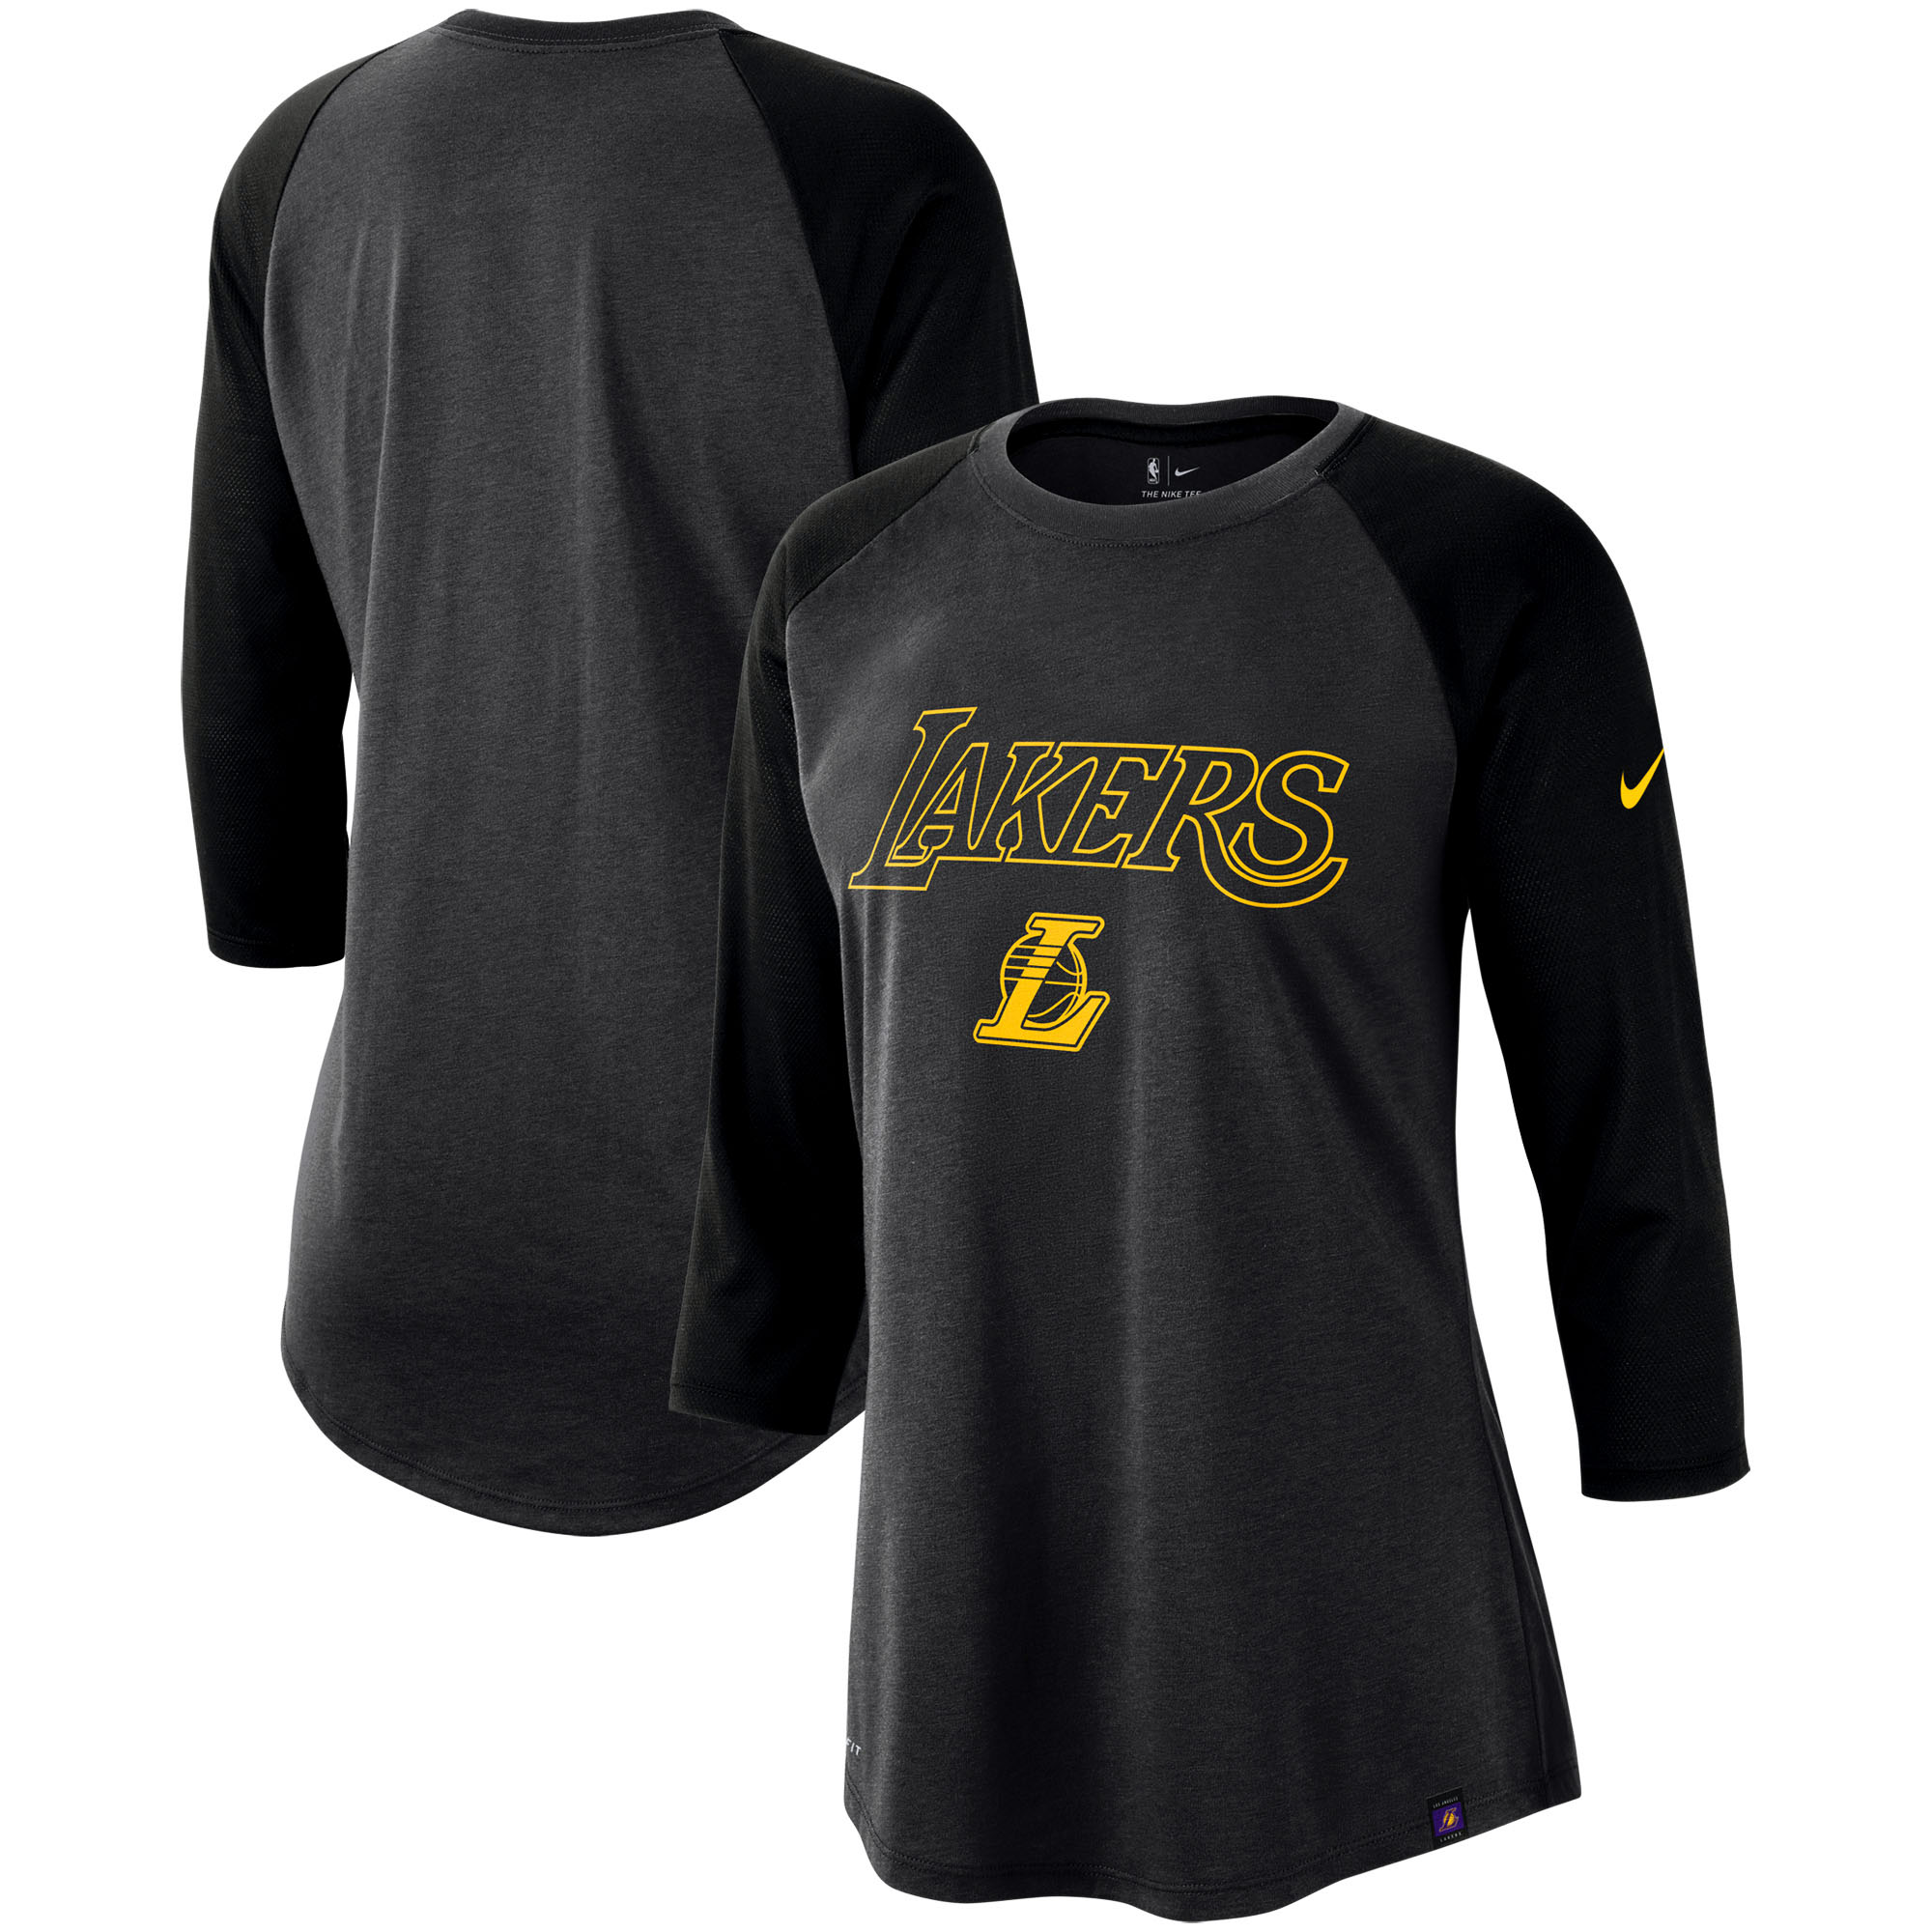 Los Angeles Lakers Nike Women's Wordmark Logo Performance 3/4-Sleeve Raglan T-Shirt - Charcoal/Black